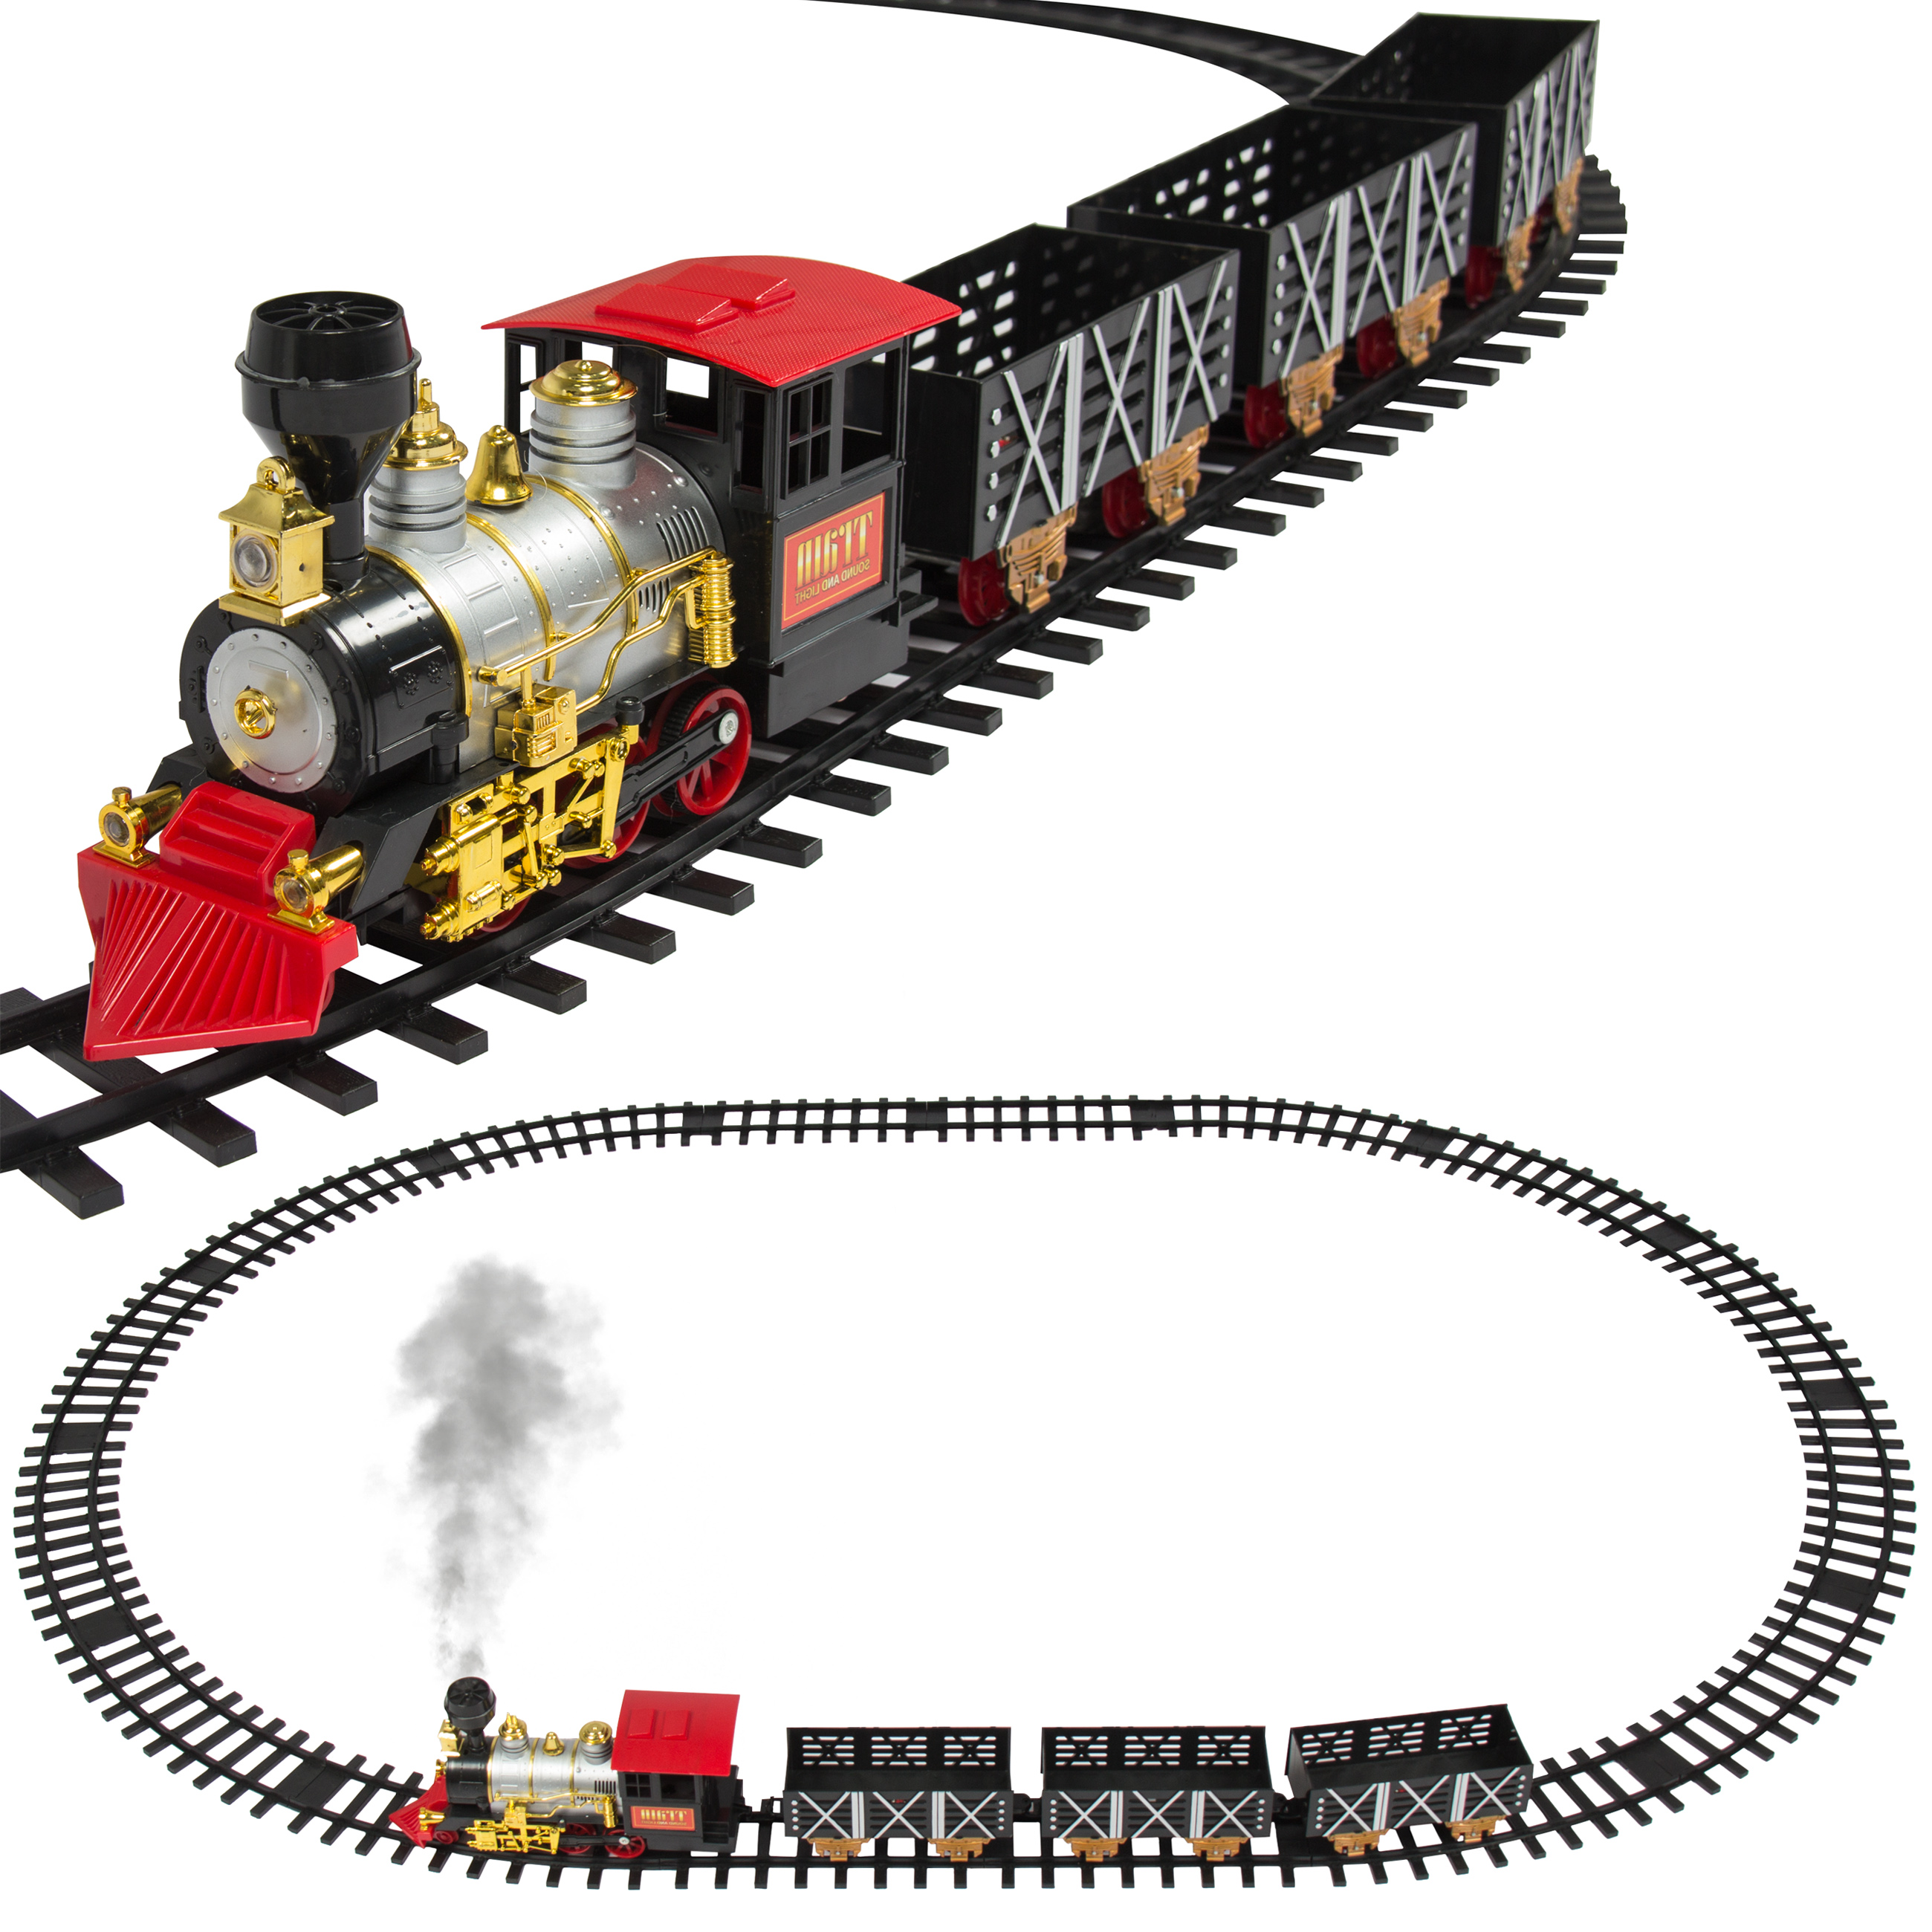 Best Choice Products Classic Train Set For Kids With Real Smoke, Music, and Lights Battery Operated Railway Car Set